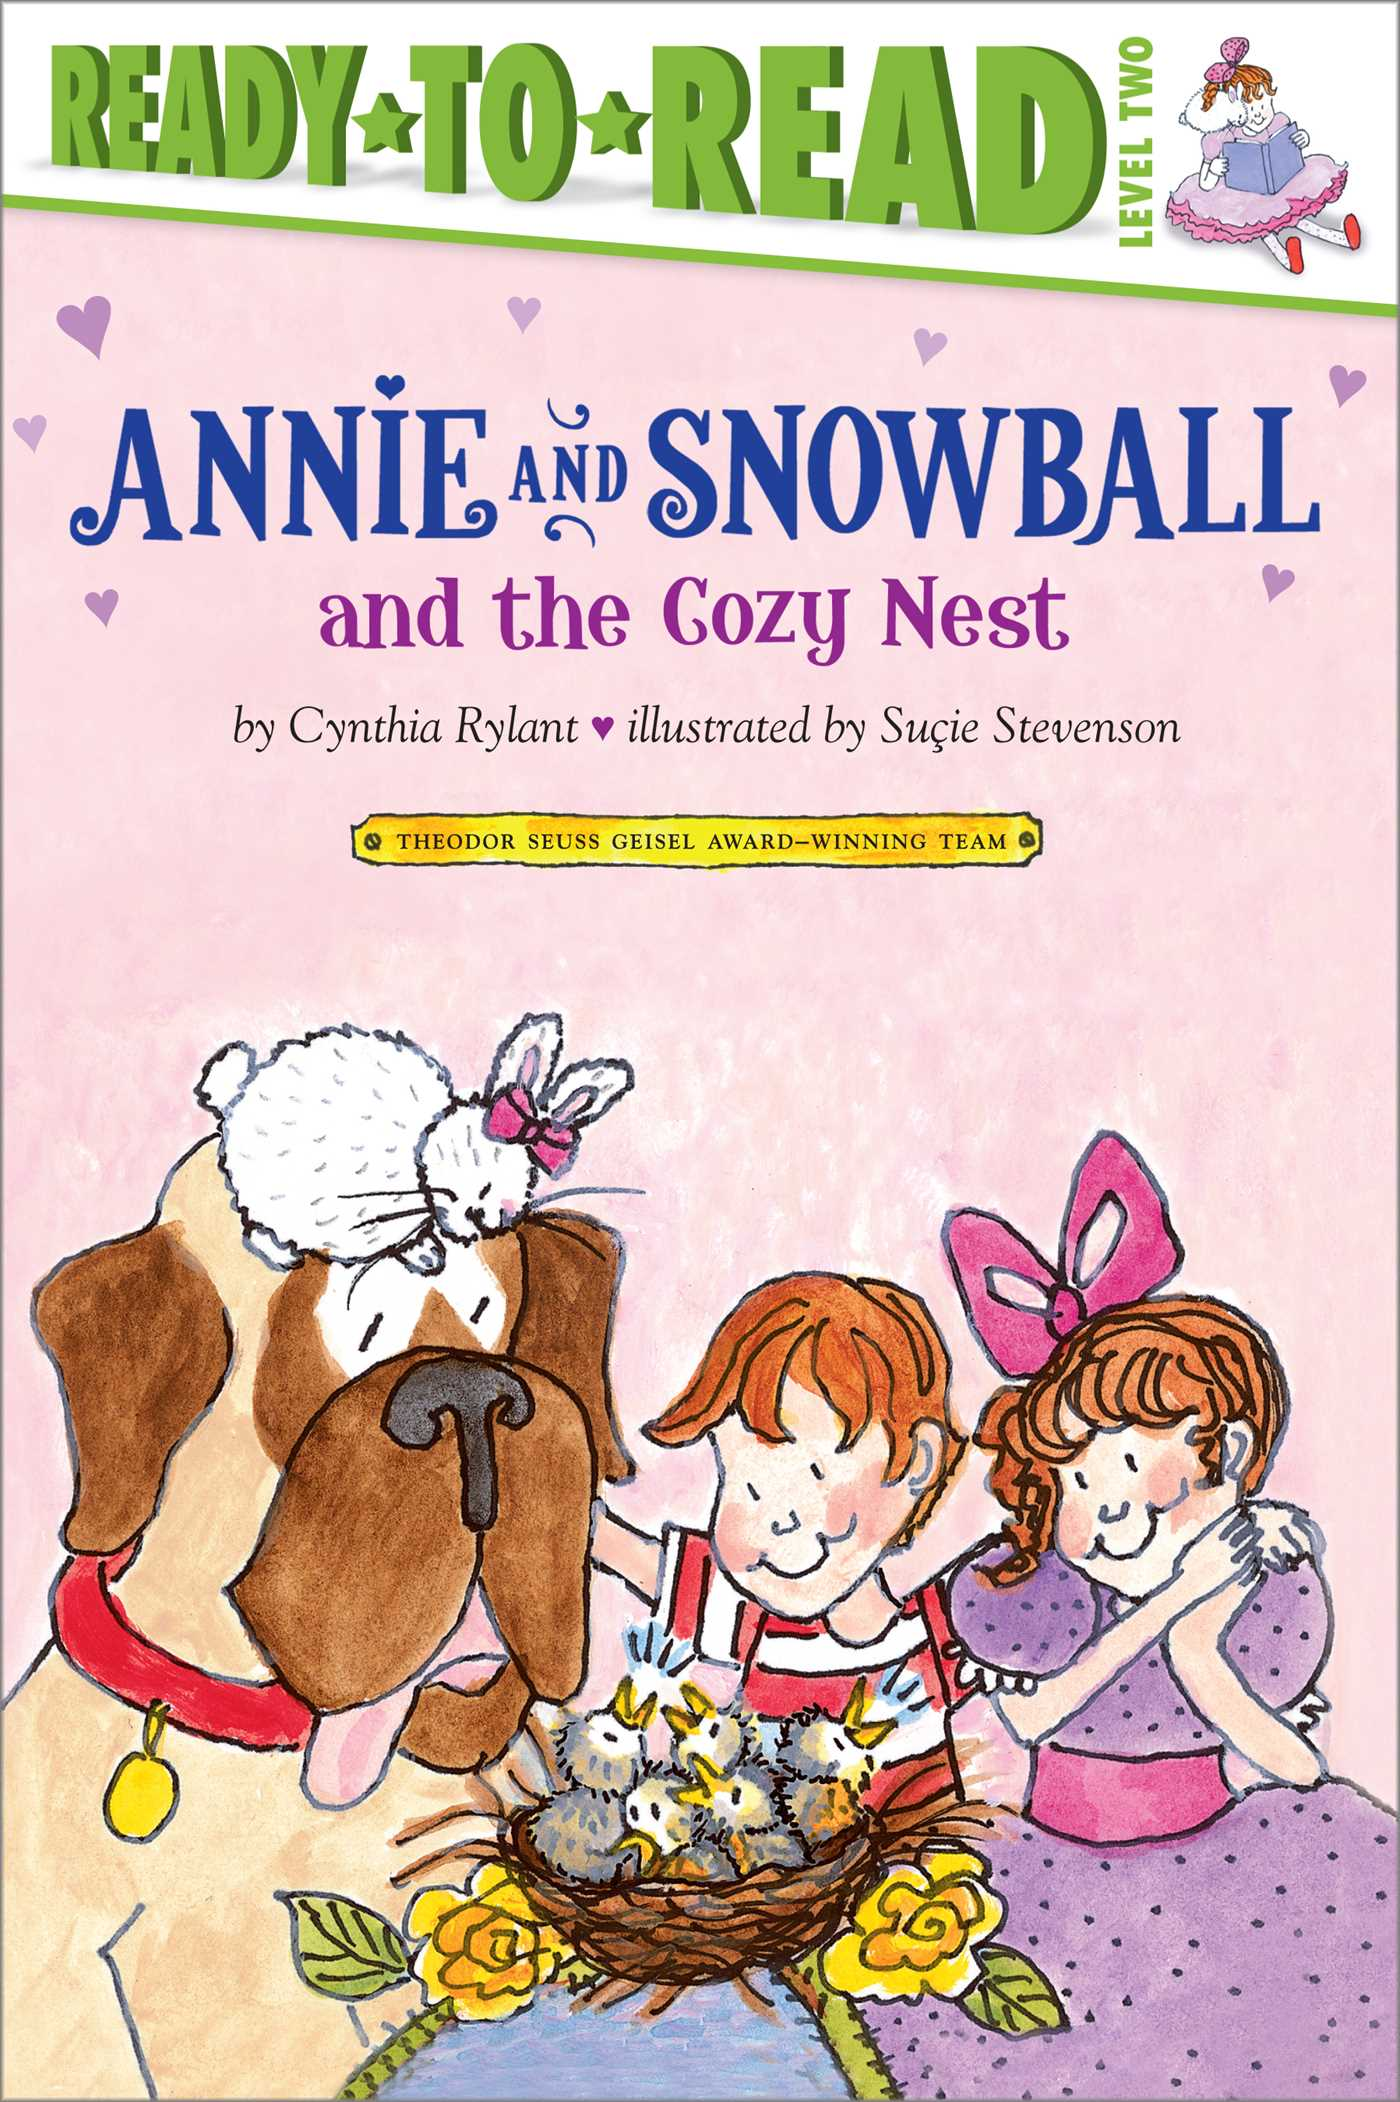 Annie-and-snowball-and-the-cozy-nest-9781416939436_hr